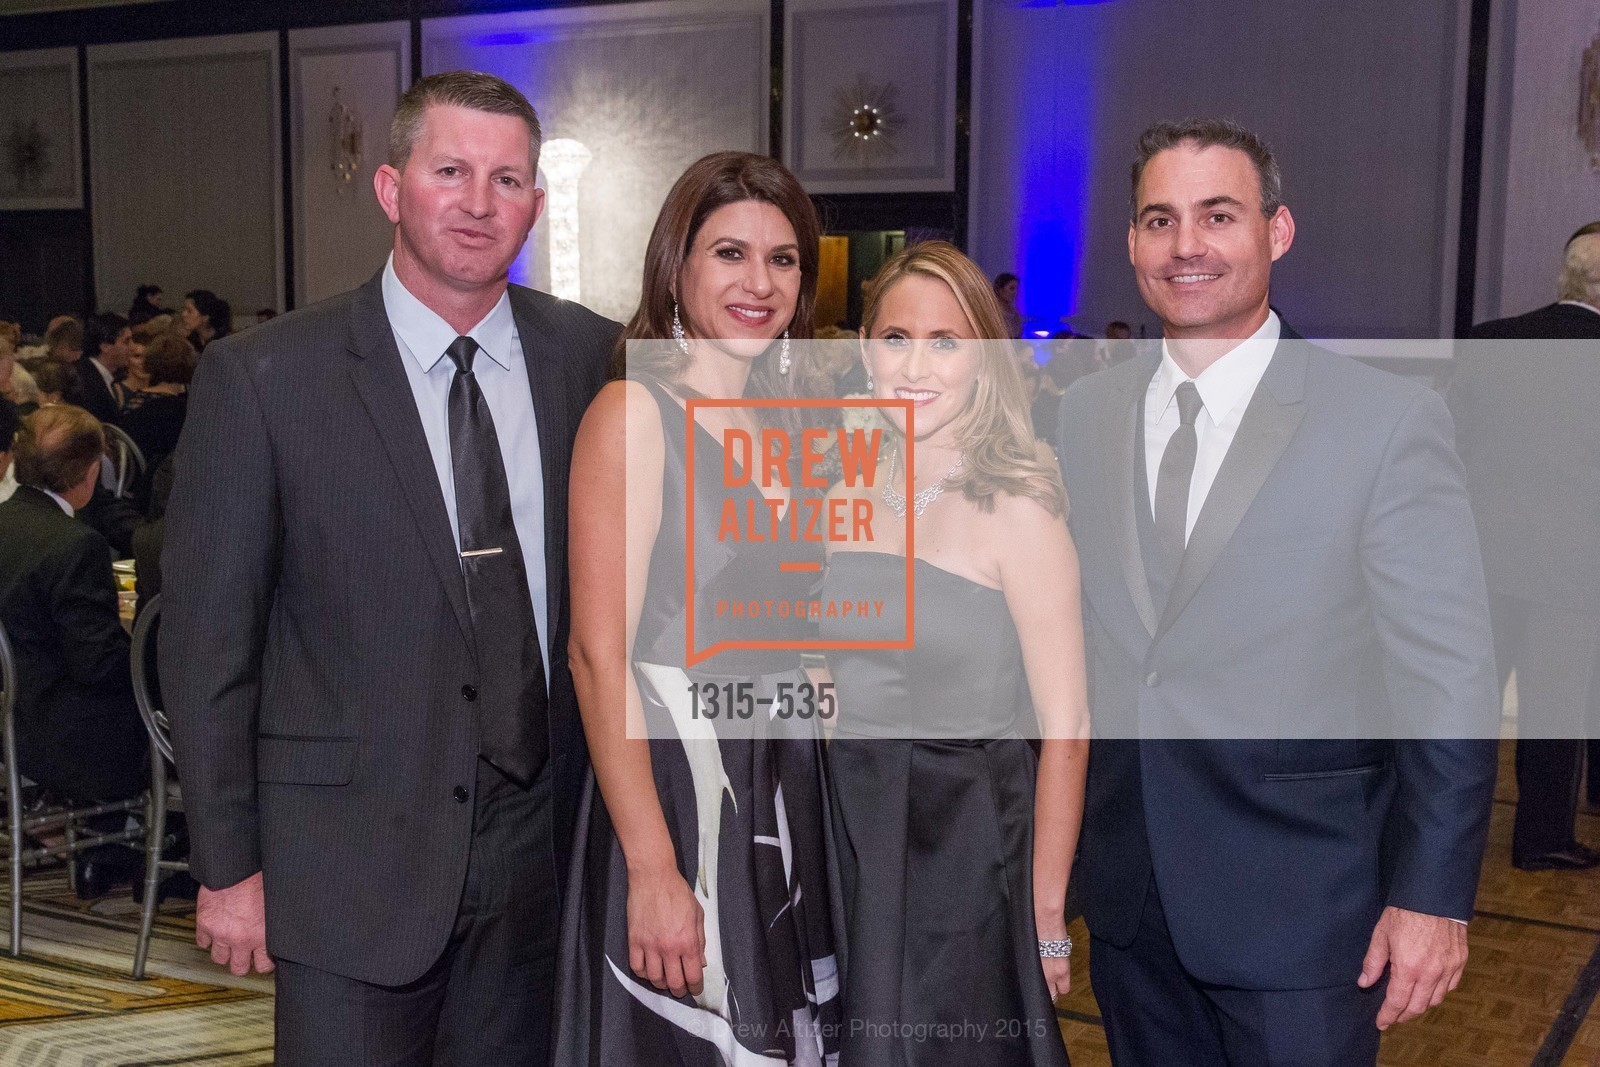 John Moutsanas, Georgia Tsigaris, Vanessa Mockler, Patrick Mockler, Hellenic Charity Ball, Westin St. Francis. 335 Powell Street, November 14th, 2015,Drew Altizer, Drew Altizer Photography, full-service event agency, private events, San Francisco photographer, photographer California